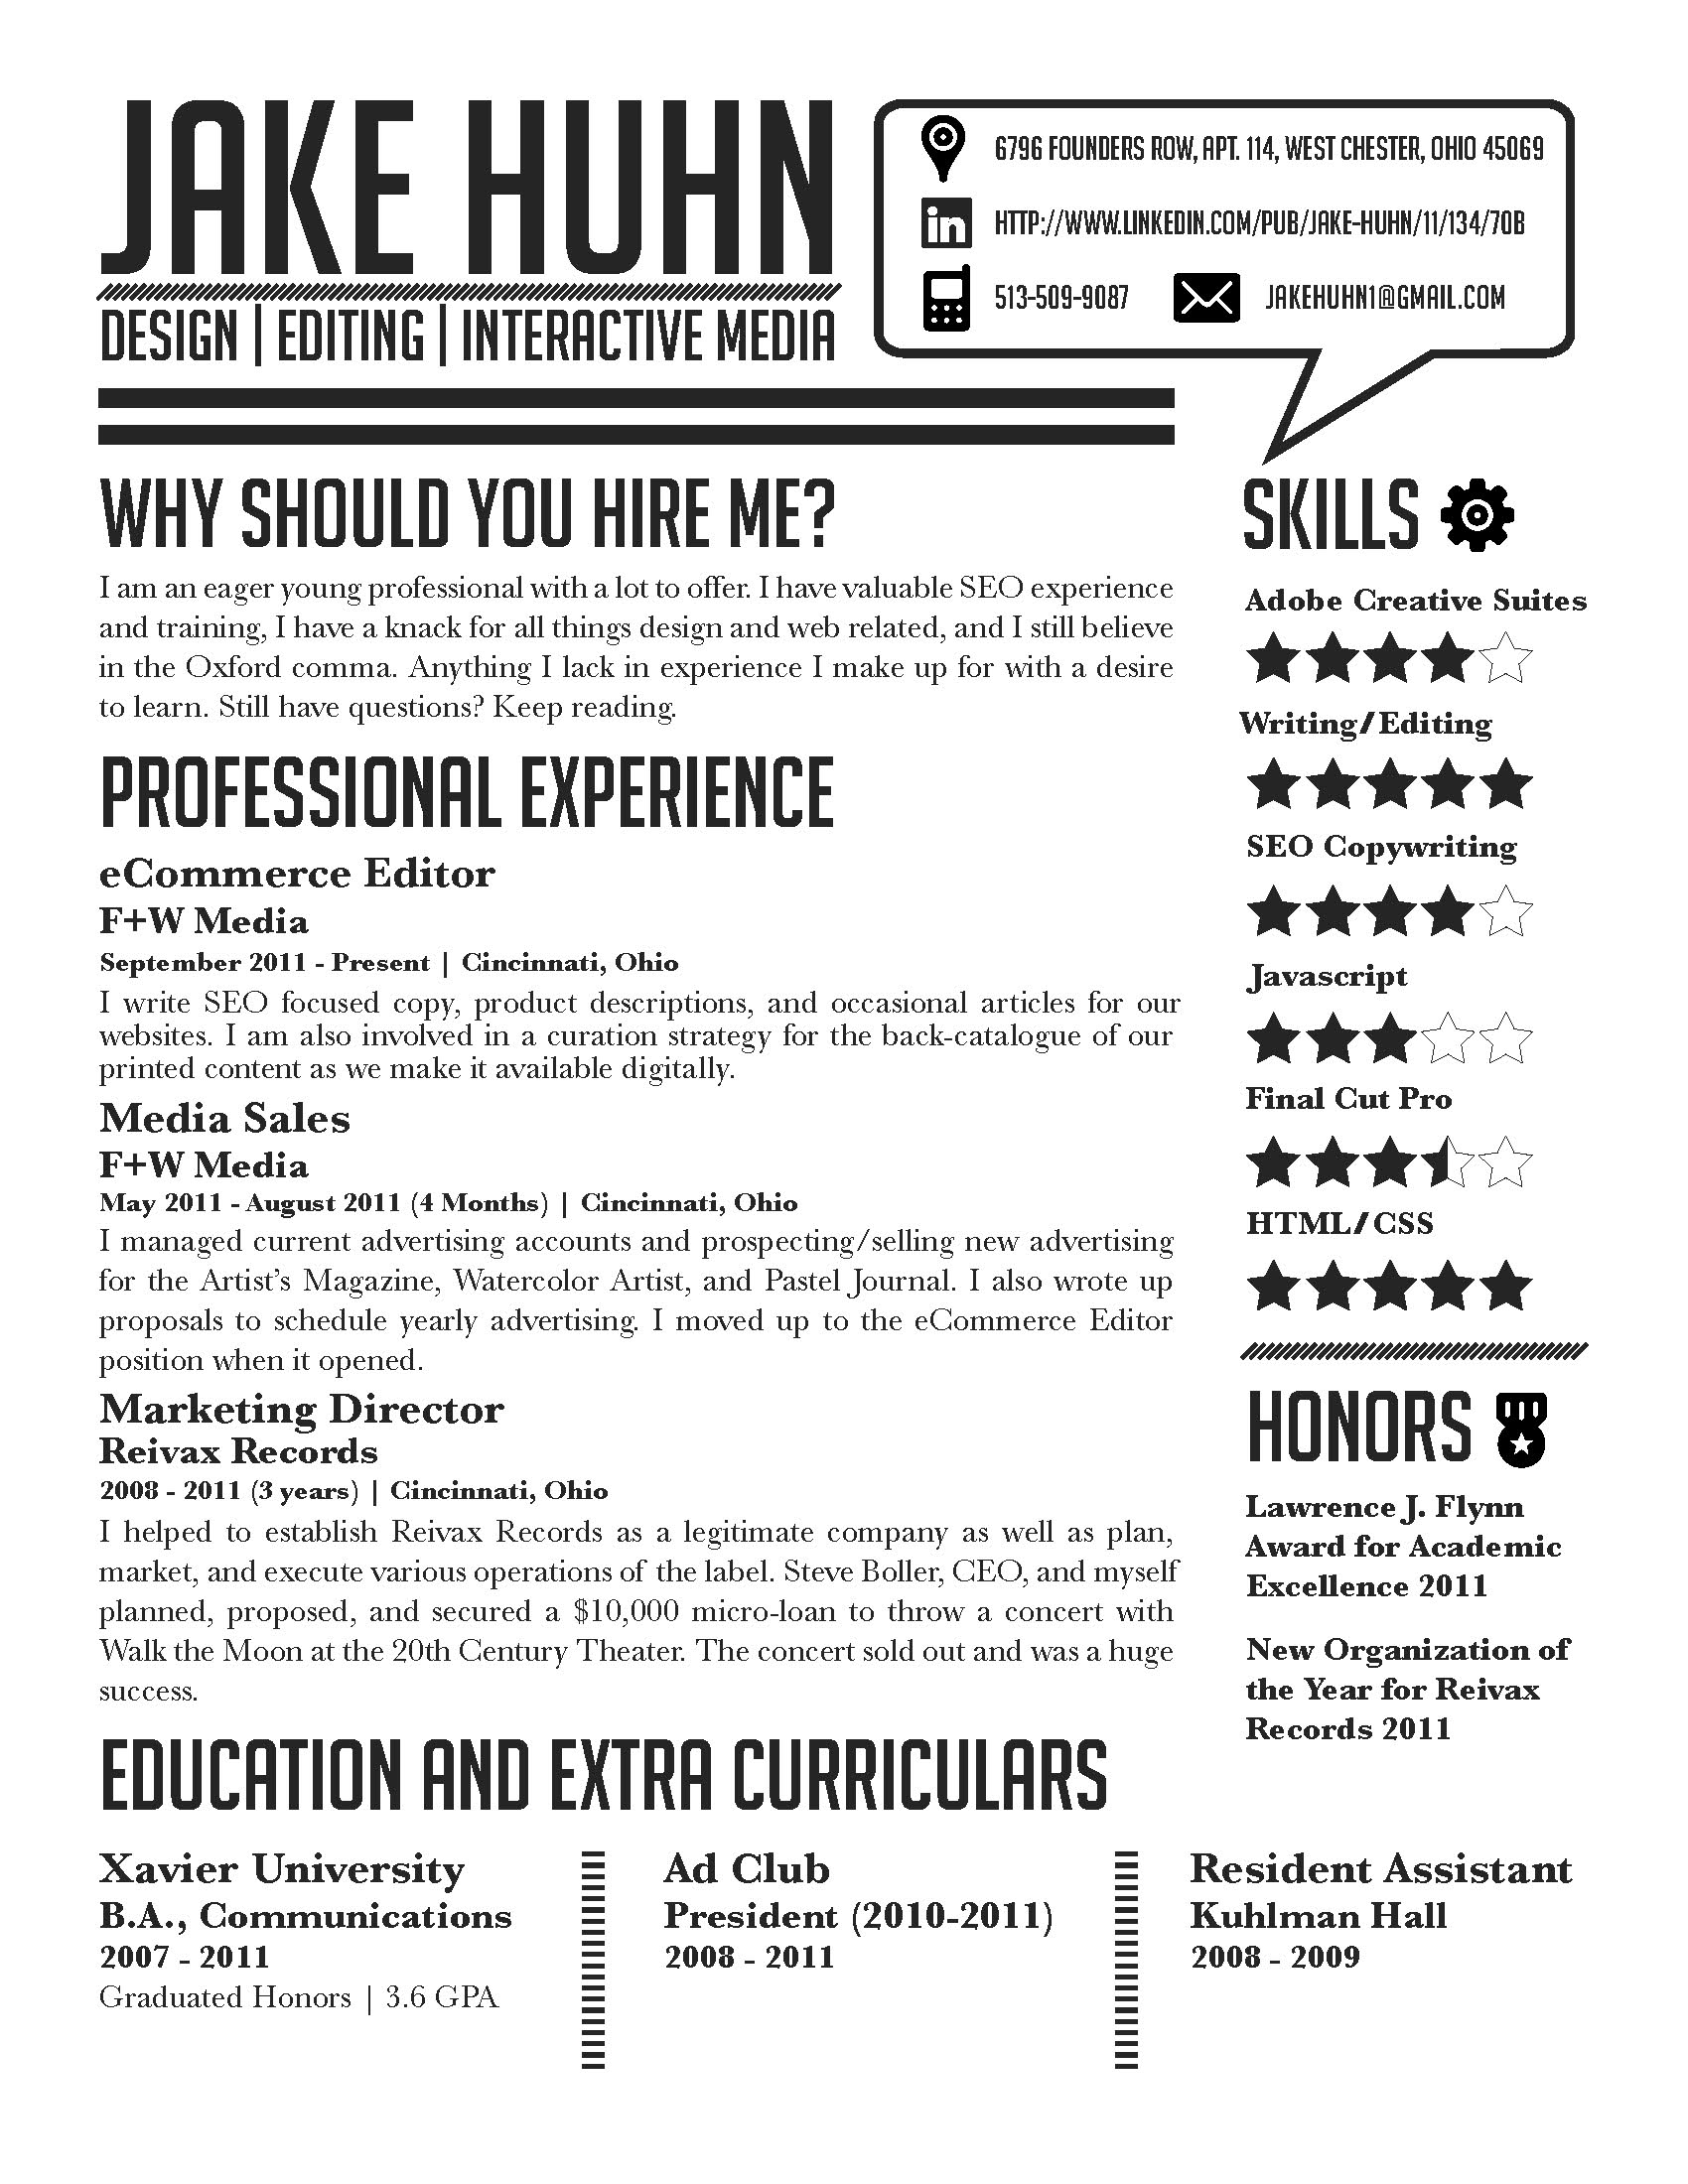 resume examples pdf designer chekamarue graphic - Graphic Design Resume Samples Pdf